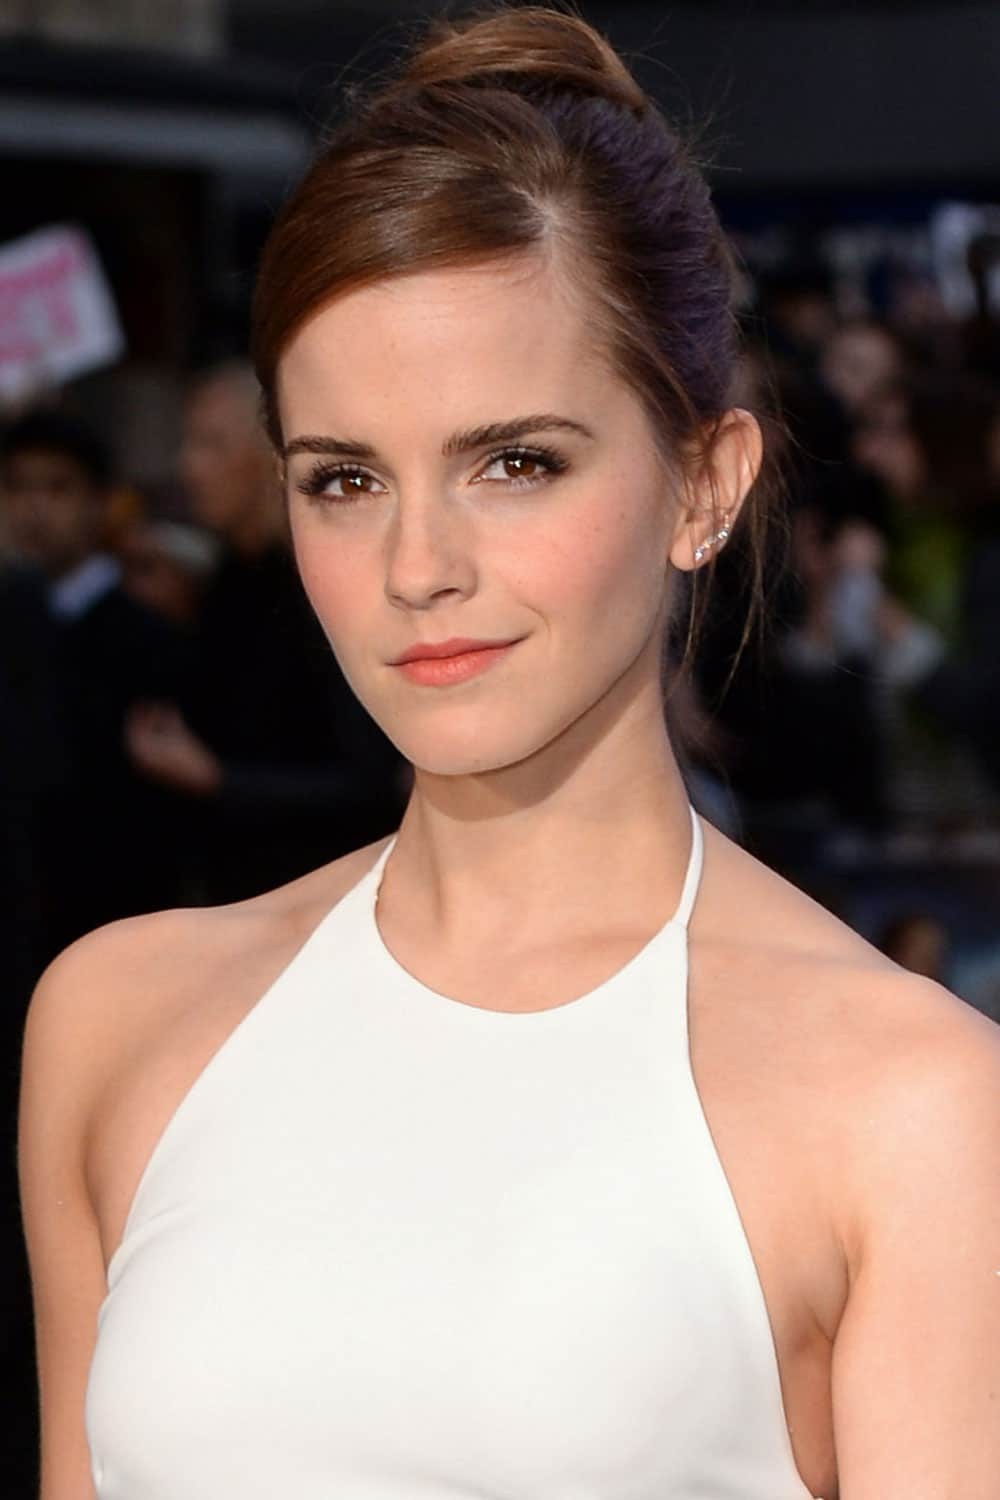 Emma Watson With A Chic Updo - The Hair 100: Top Celebrity ...